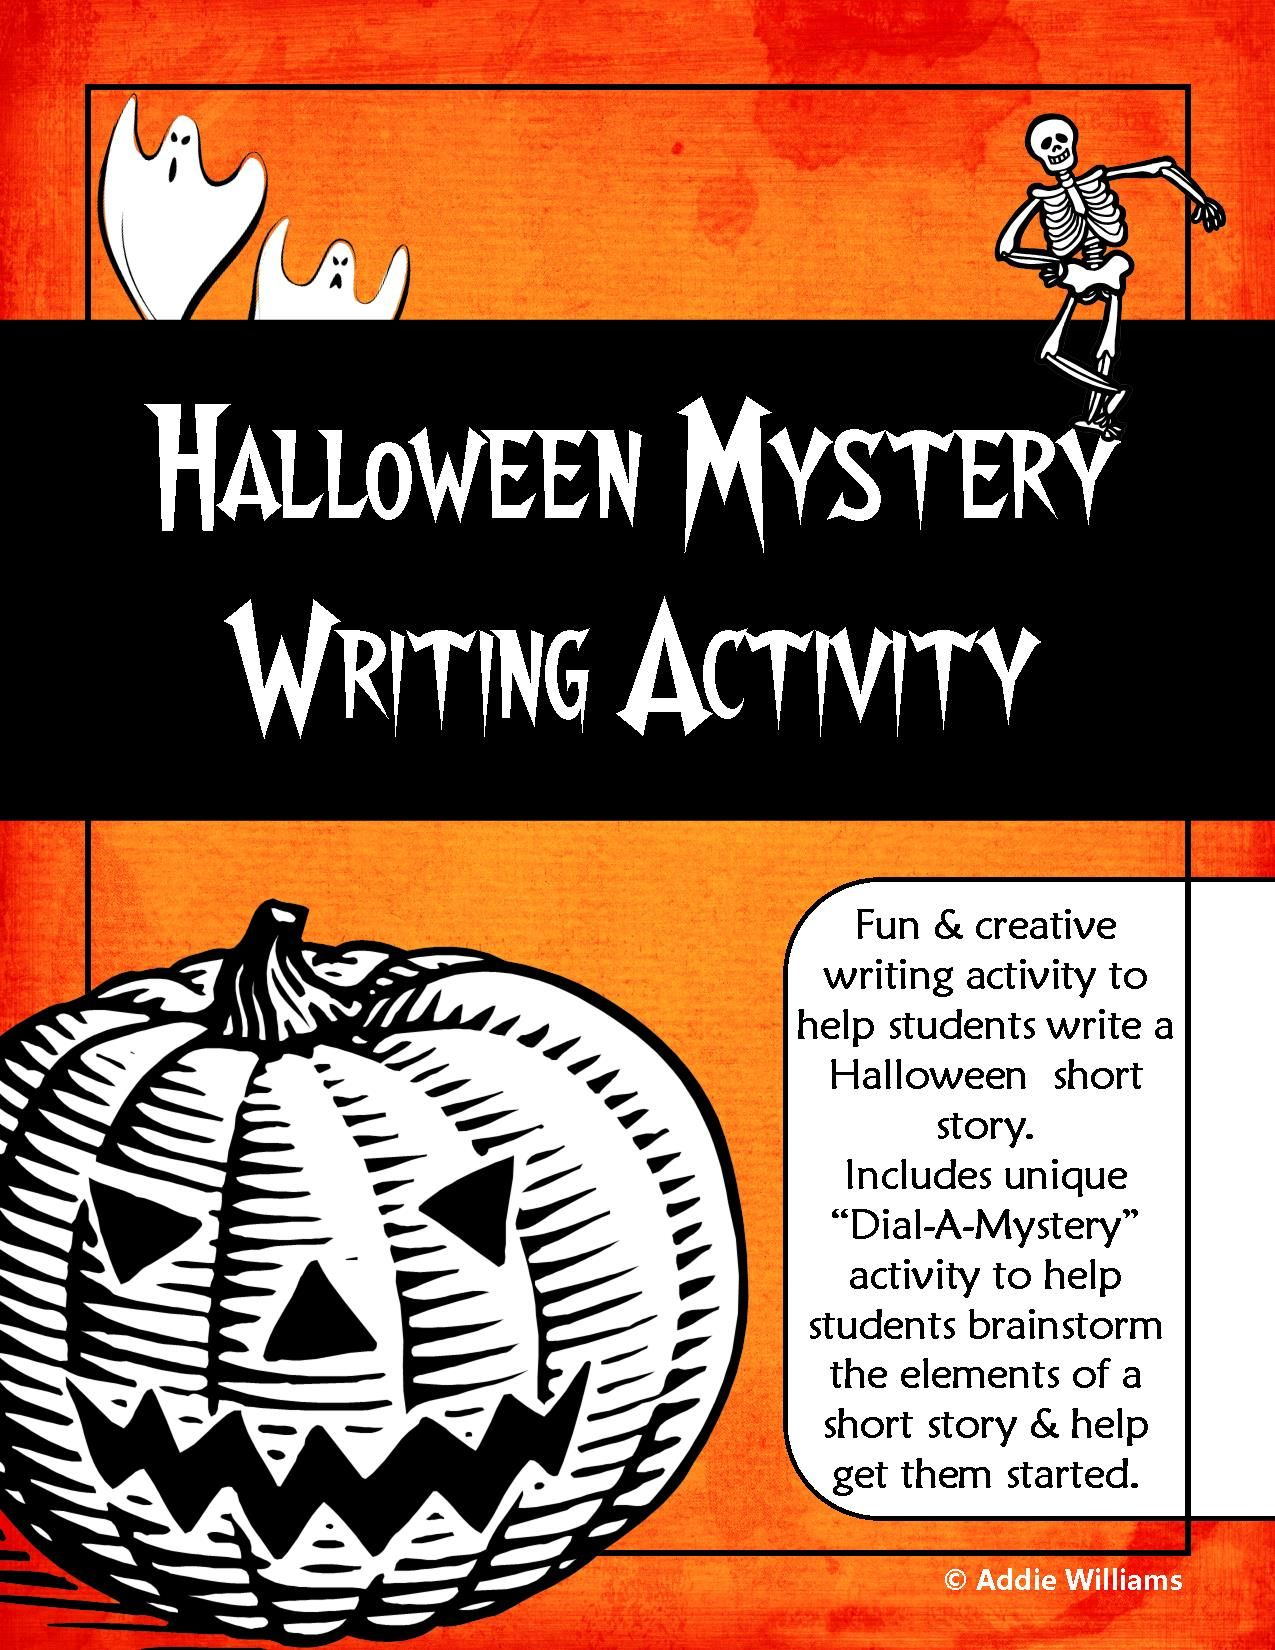 Halloween Mystery Writing Activity Unique And Fun Brainstorming Technique To Help Students Creative Writing Jobs Halloween Writing Activities Mystery Writing [ 1650 x 1275 Pixel ]